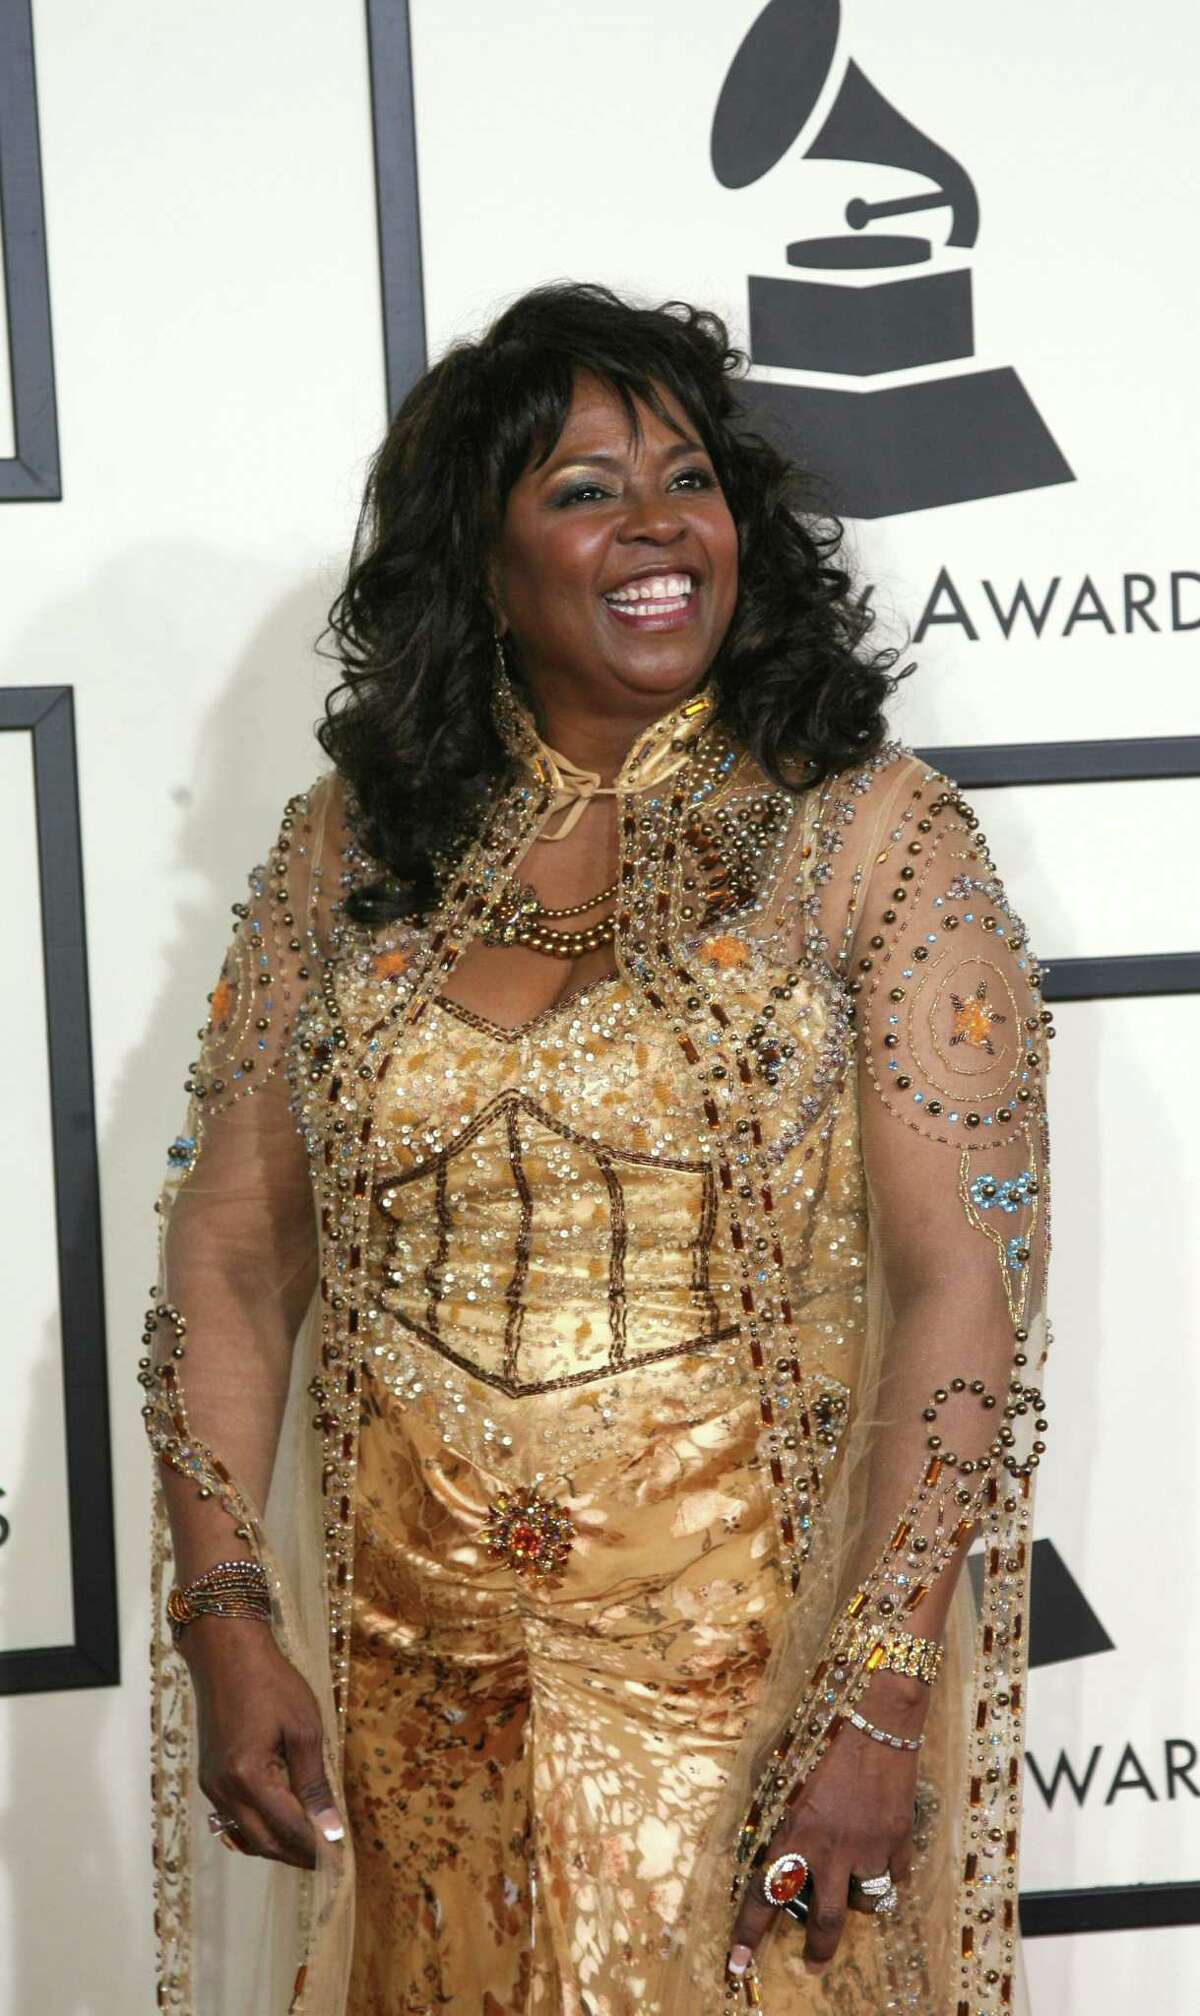 """Betty Wright, 66, died in May. She was the Grammy-winning soul singer and songwriter whose influential 1970s hits included """"Clean Up Woman."""""""